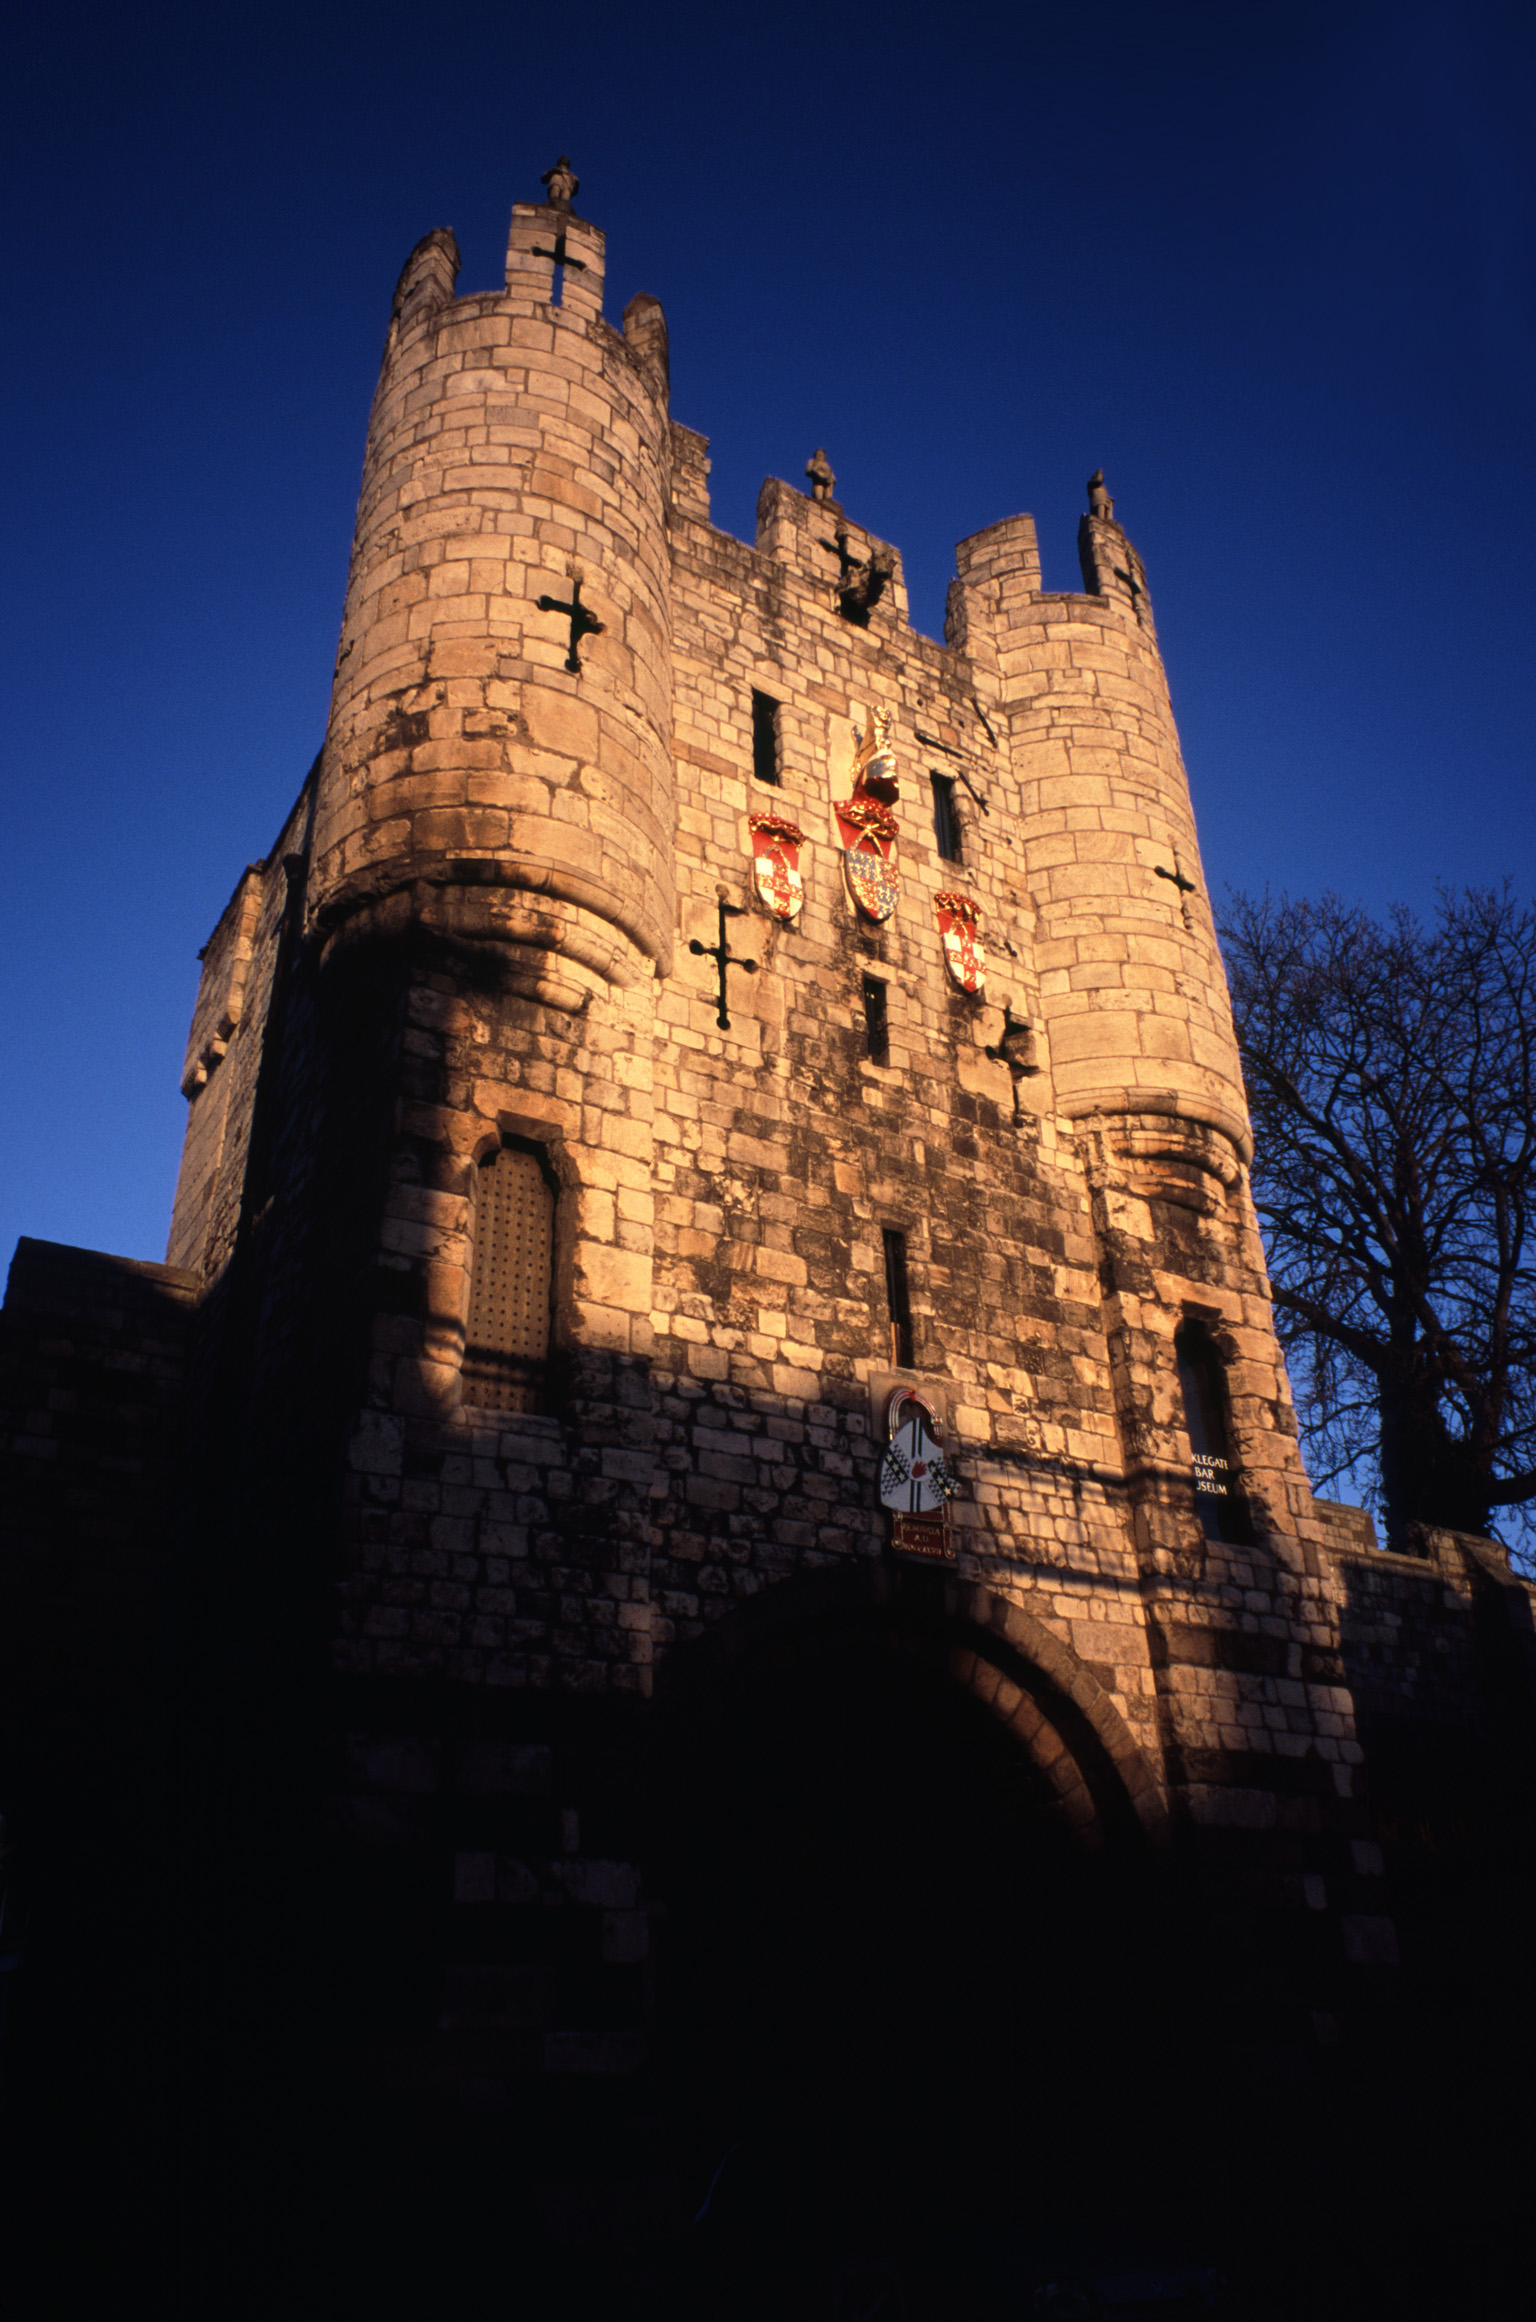 Landmark of Micklegate Bar in York, England. Captured During Sundown Time with Dark Blue Sky Above.